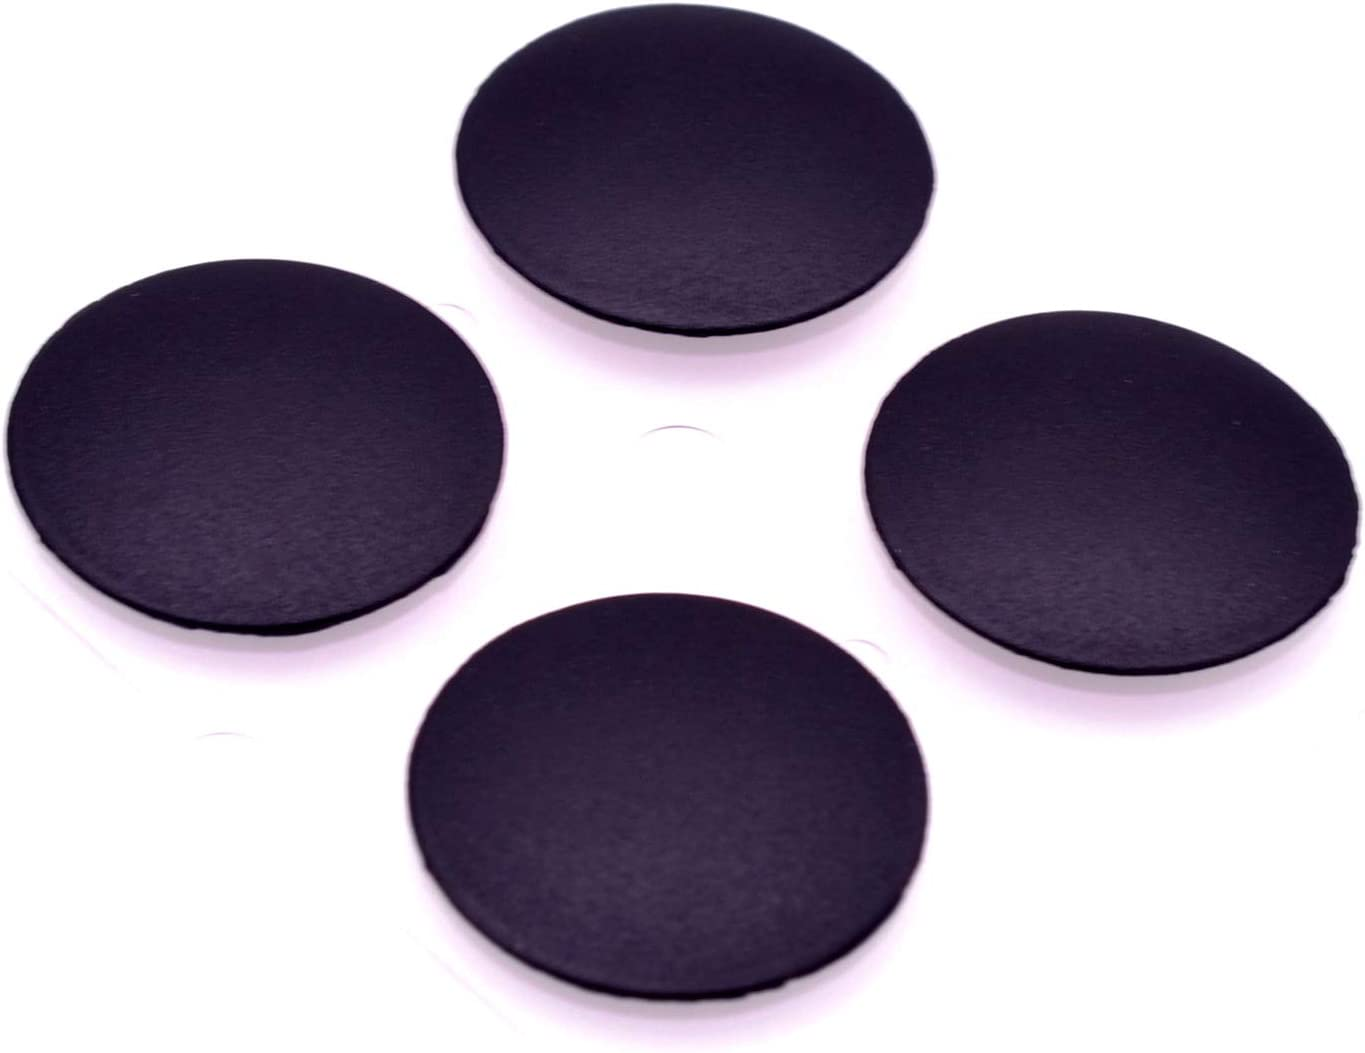 """Deal4GO 4-Pack Bottom Sticky Rubber Feet Pads Replacement for MacBook Pro A1278 A1286 A1297 13"""" 15"""" 17"""" Bottom Case Plastic Foot Pad"""